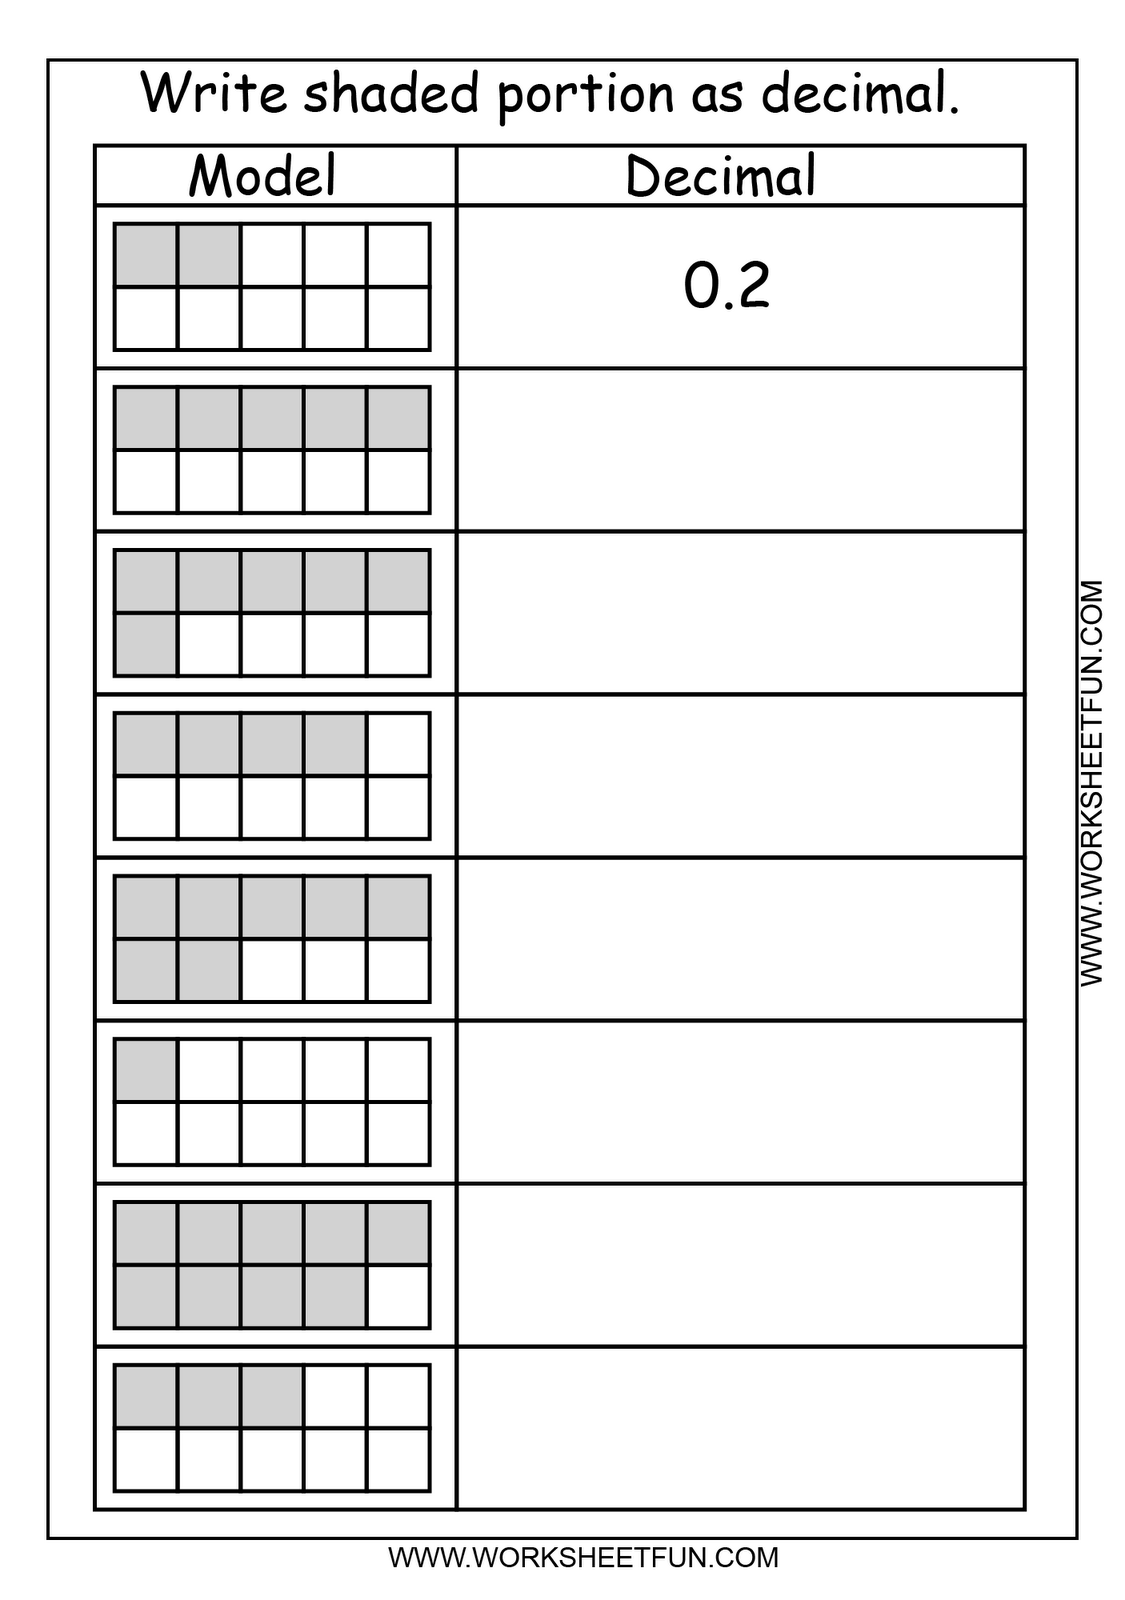 worksheet Tenths And Hundredths Worksheets heres a site with number of pages on decimals models decimal free worksheets addition and subtraction